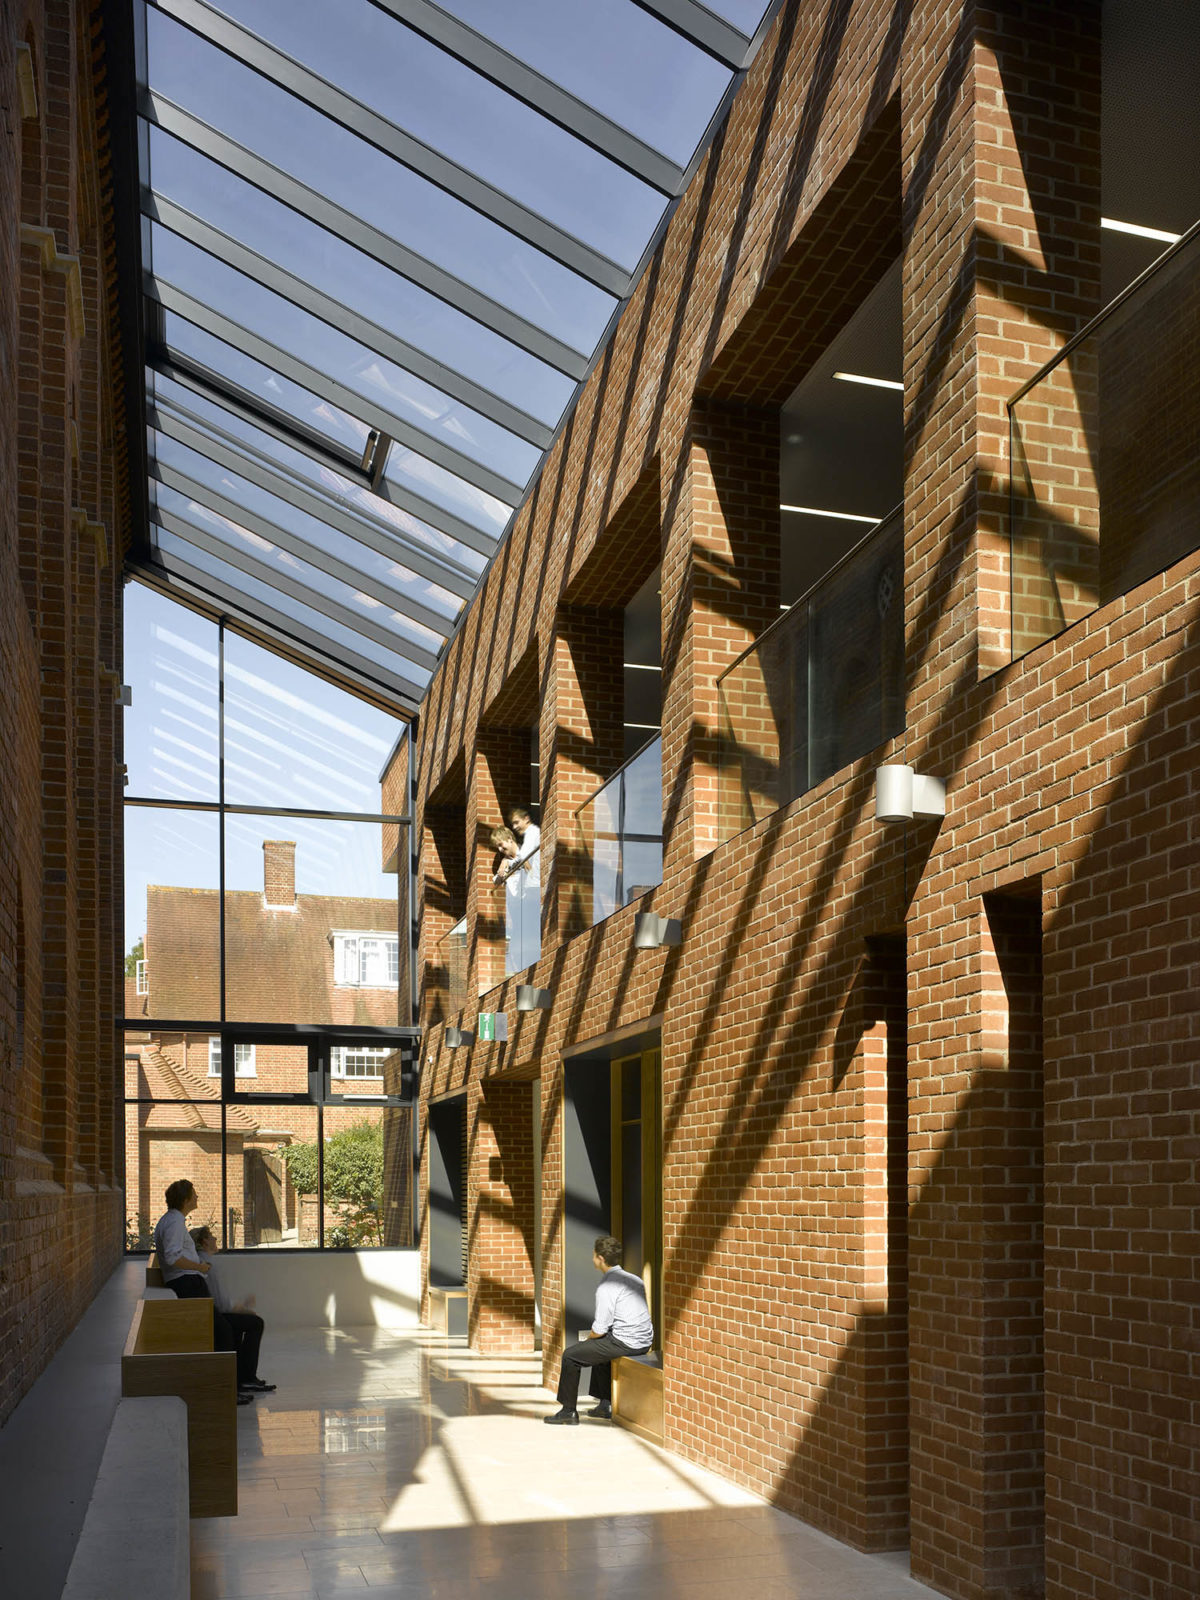 Design Engine's Radley College Interior existing building against new build